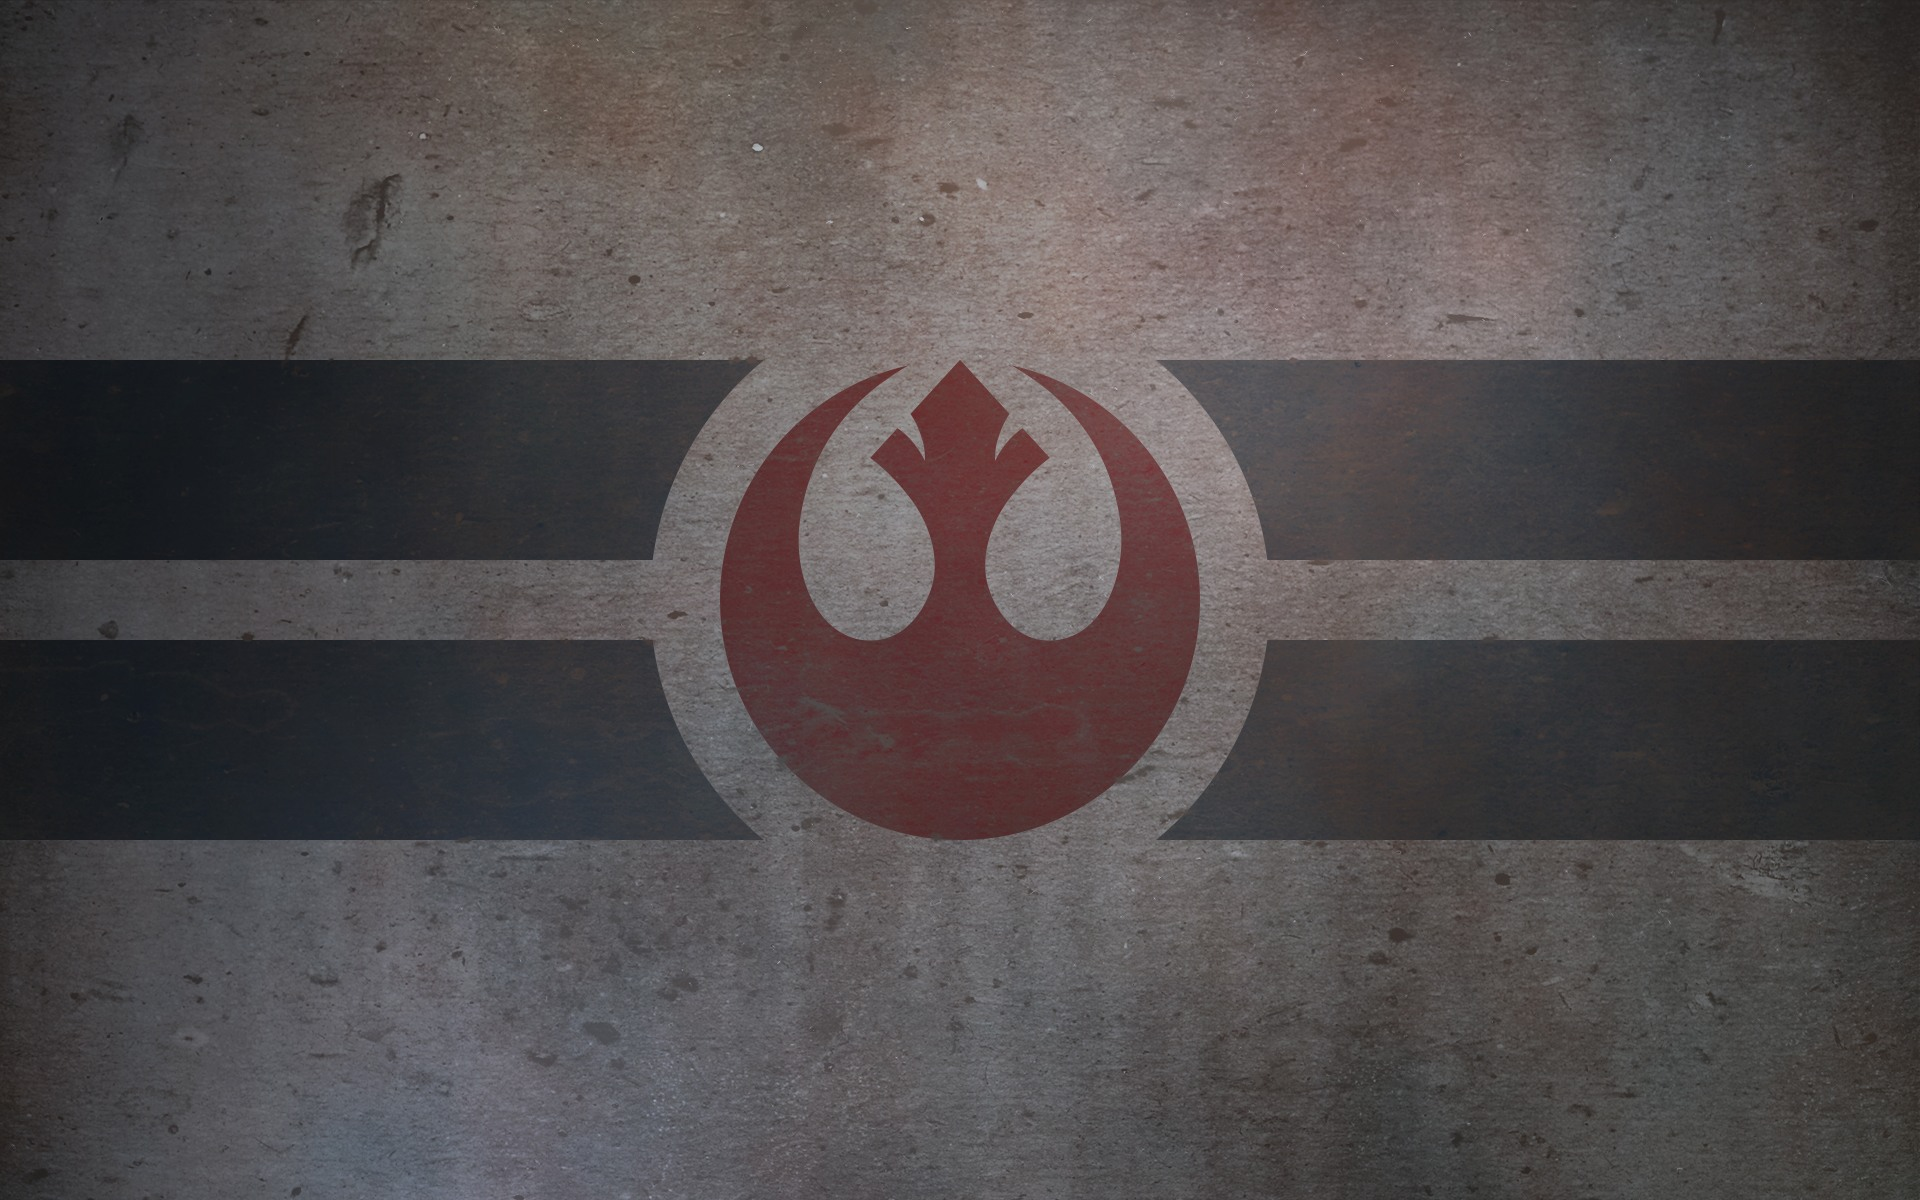 Star Wars   Rebel Alliance desktop wallpaper 1920x1200